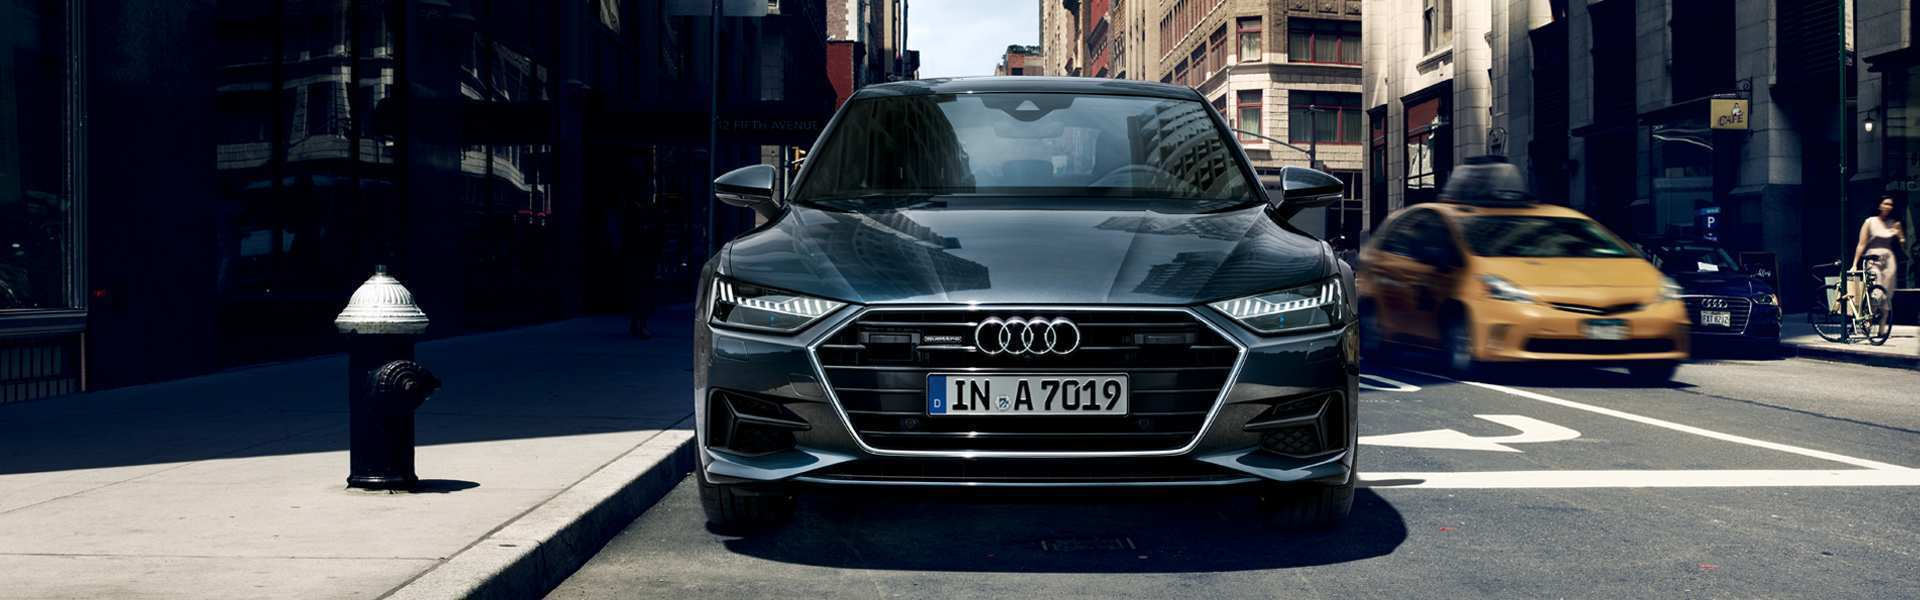 50 New 2020 All Audi A7 Interior